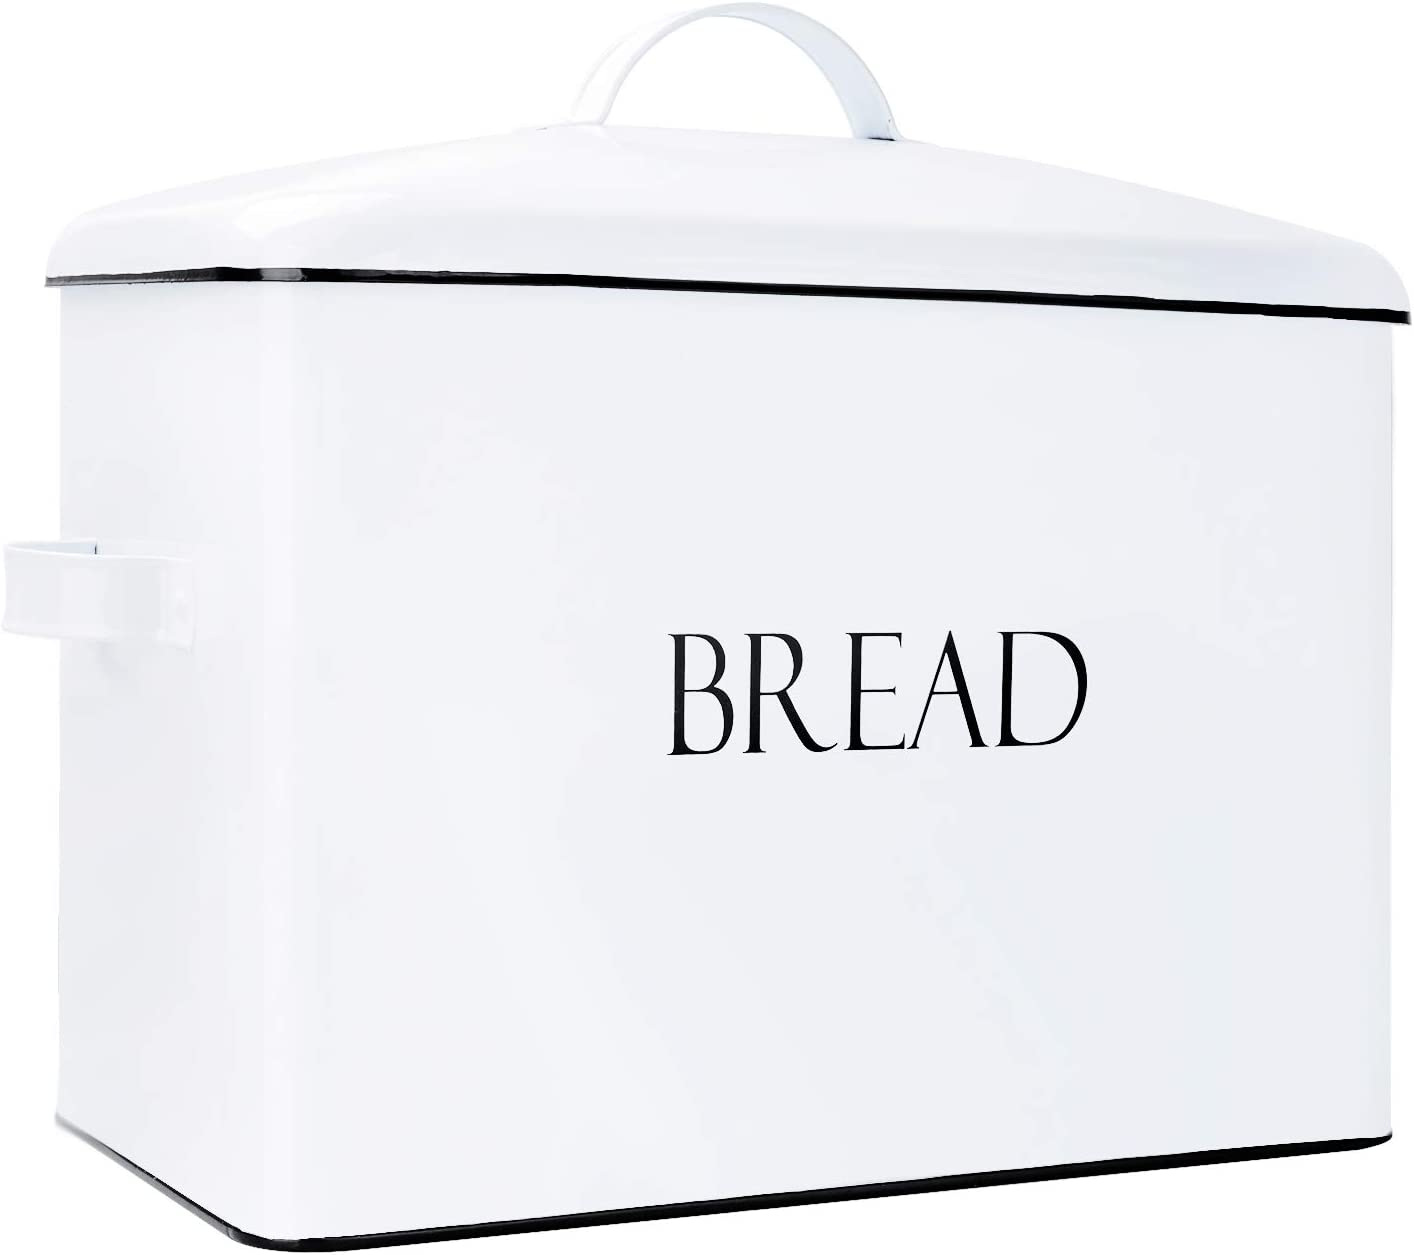 """Outshine Vintage Metal Bread Bin - Countertop Space-Saving, Extra Large, High Capacity Bread Storage Box for your Kitchen - Holds 2+ Loaves 13"""" x 10"""" x 7""""- White with BREAD Lettering (White)"""